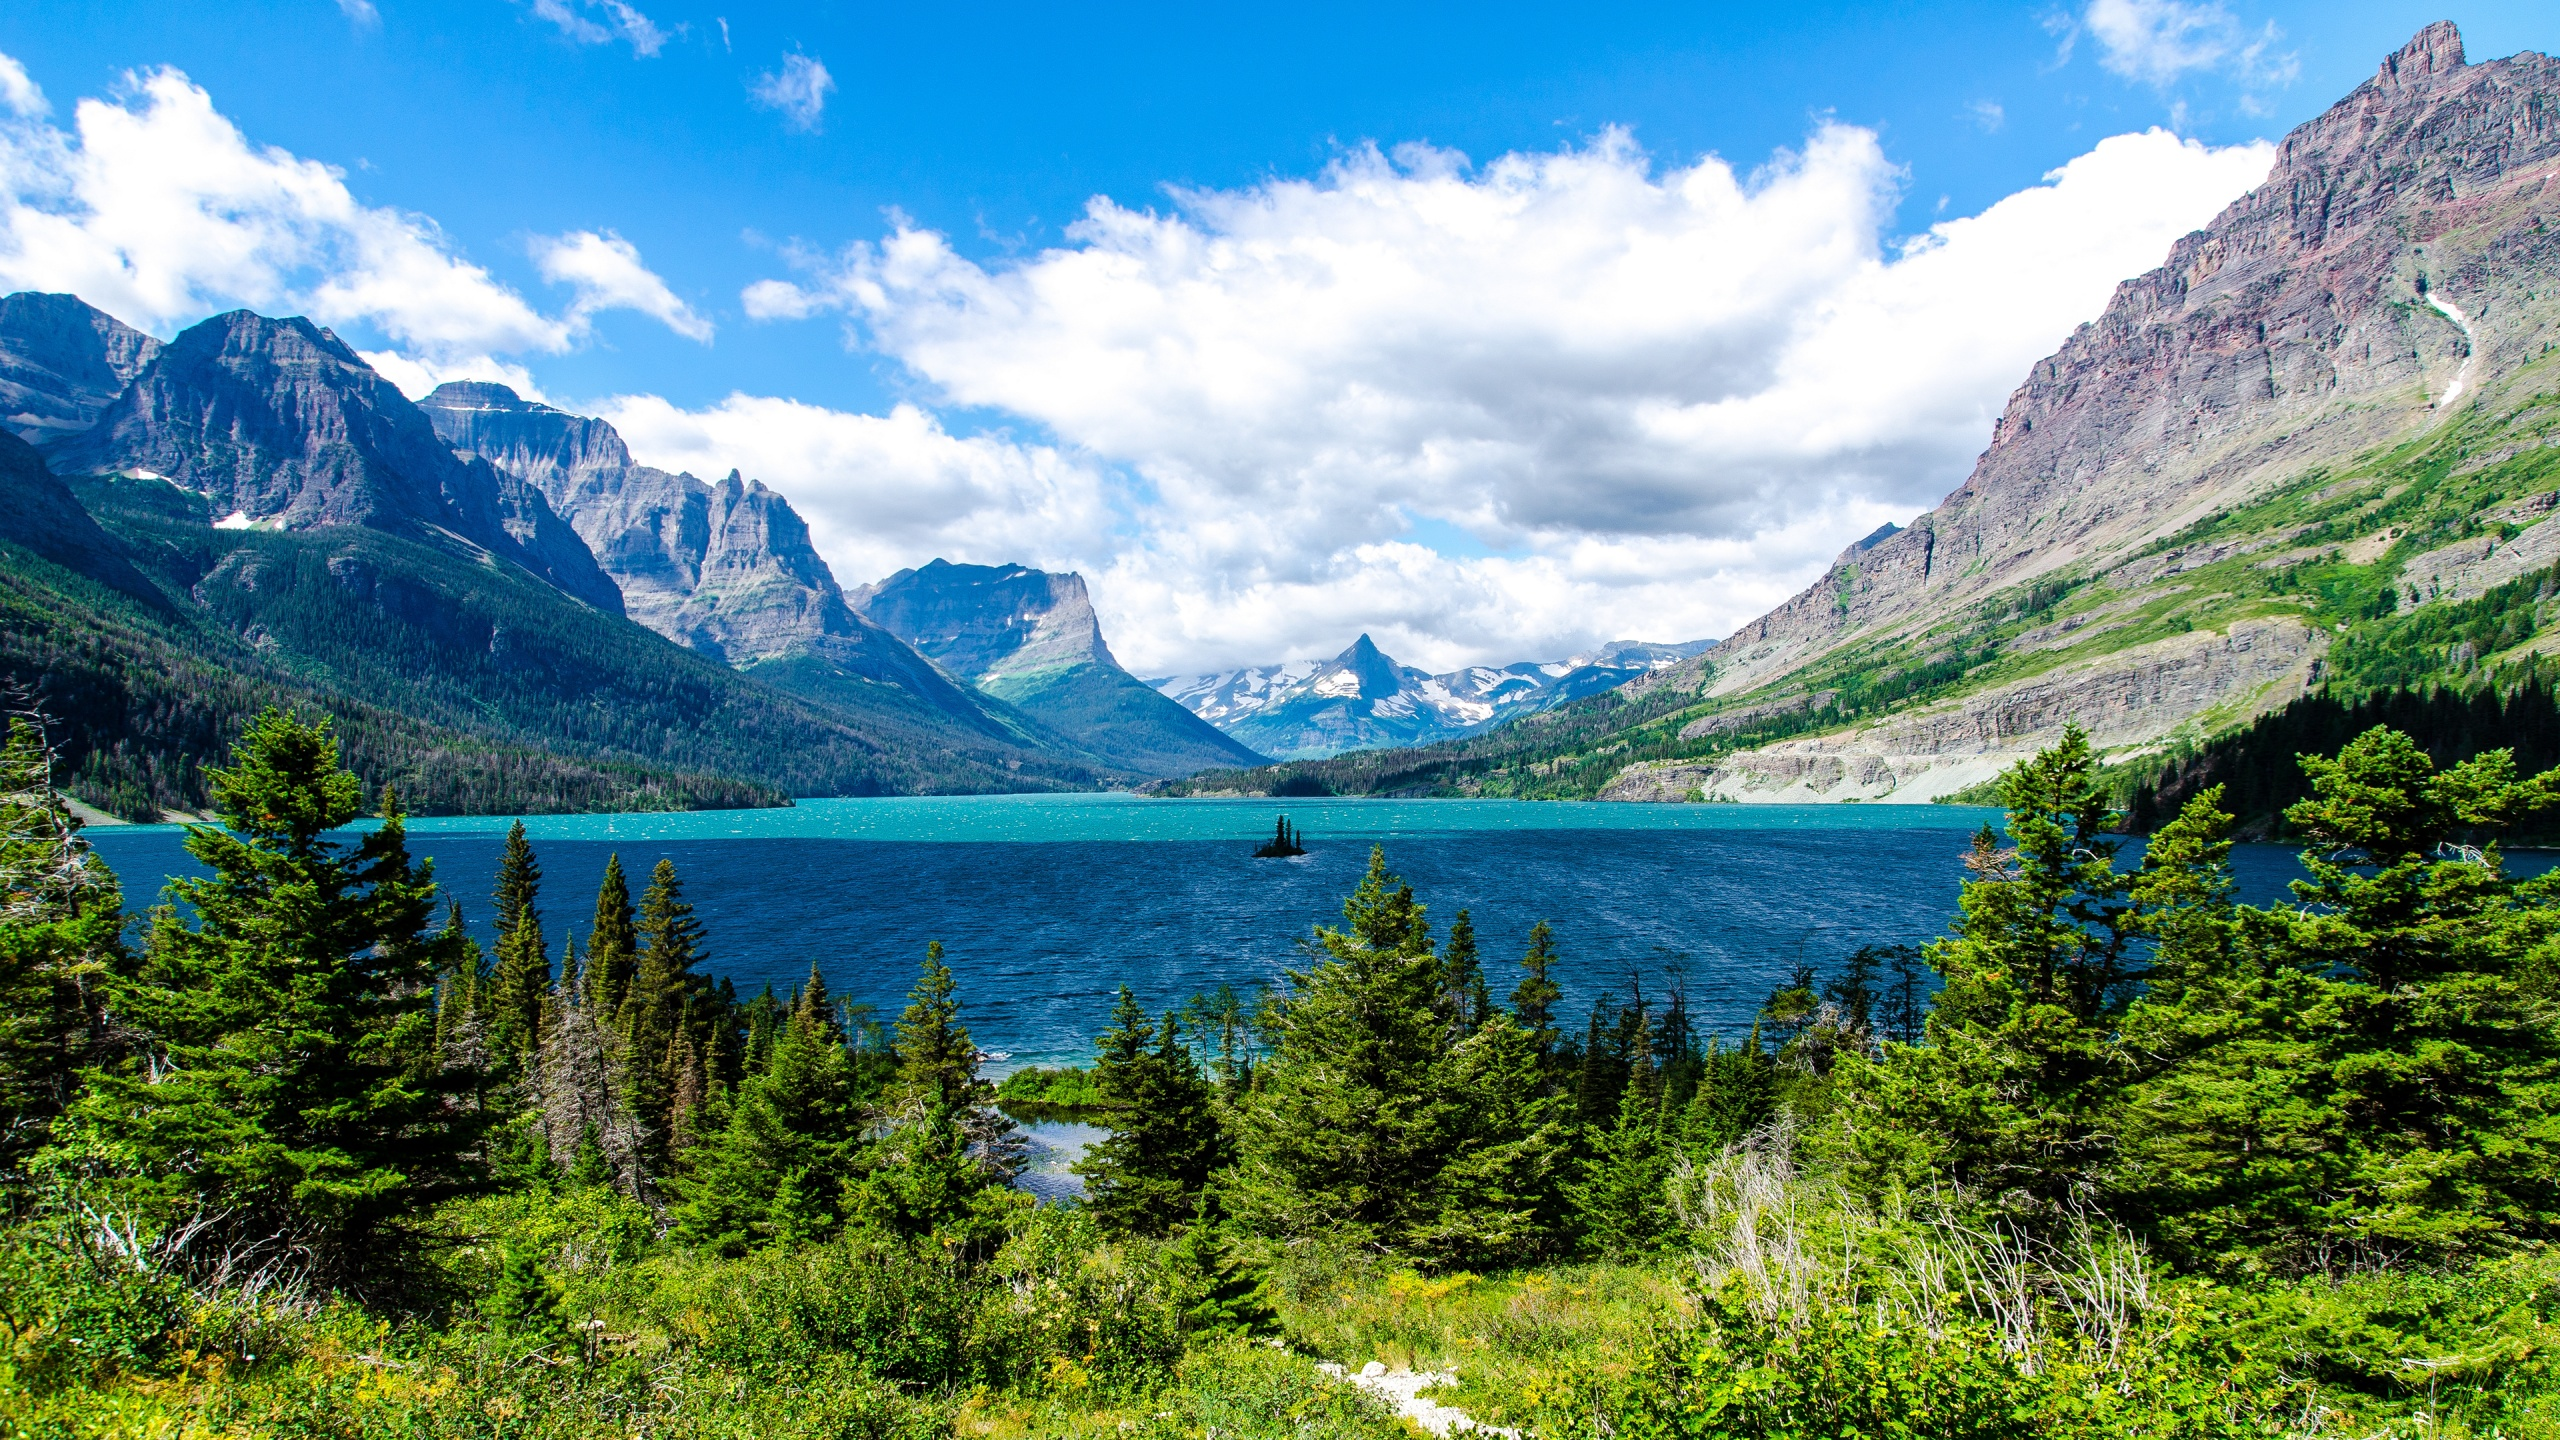 42 Glacier National Park Wallpaper On Wallpapersafari